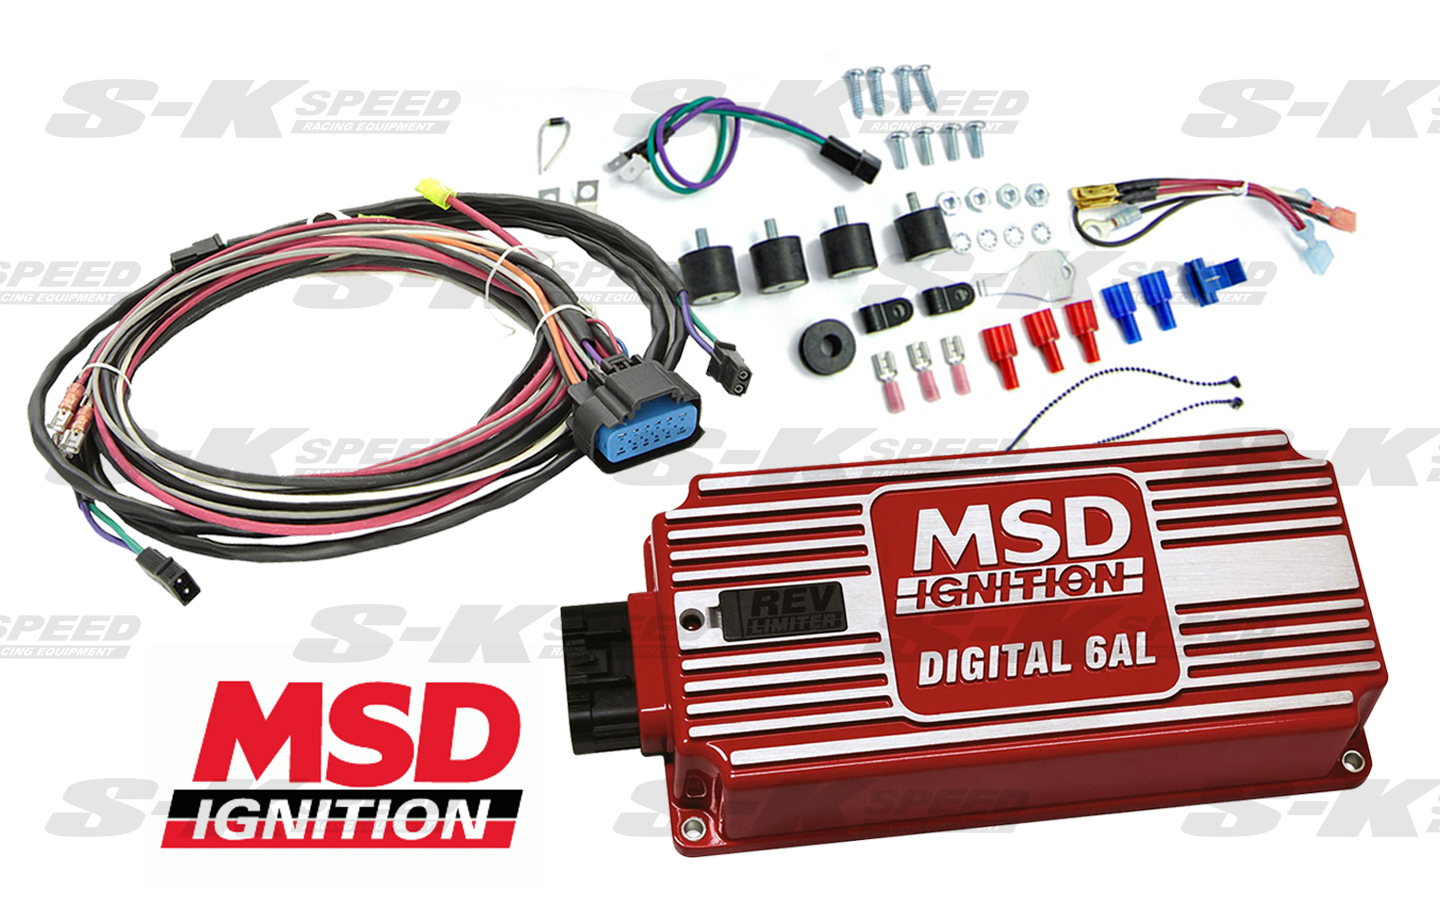 Msd 6425 Digital 6al Cd Multiple Spark Universal Ignition